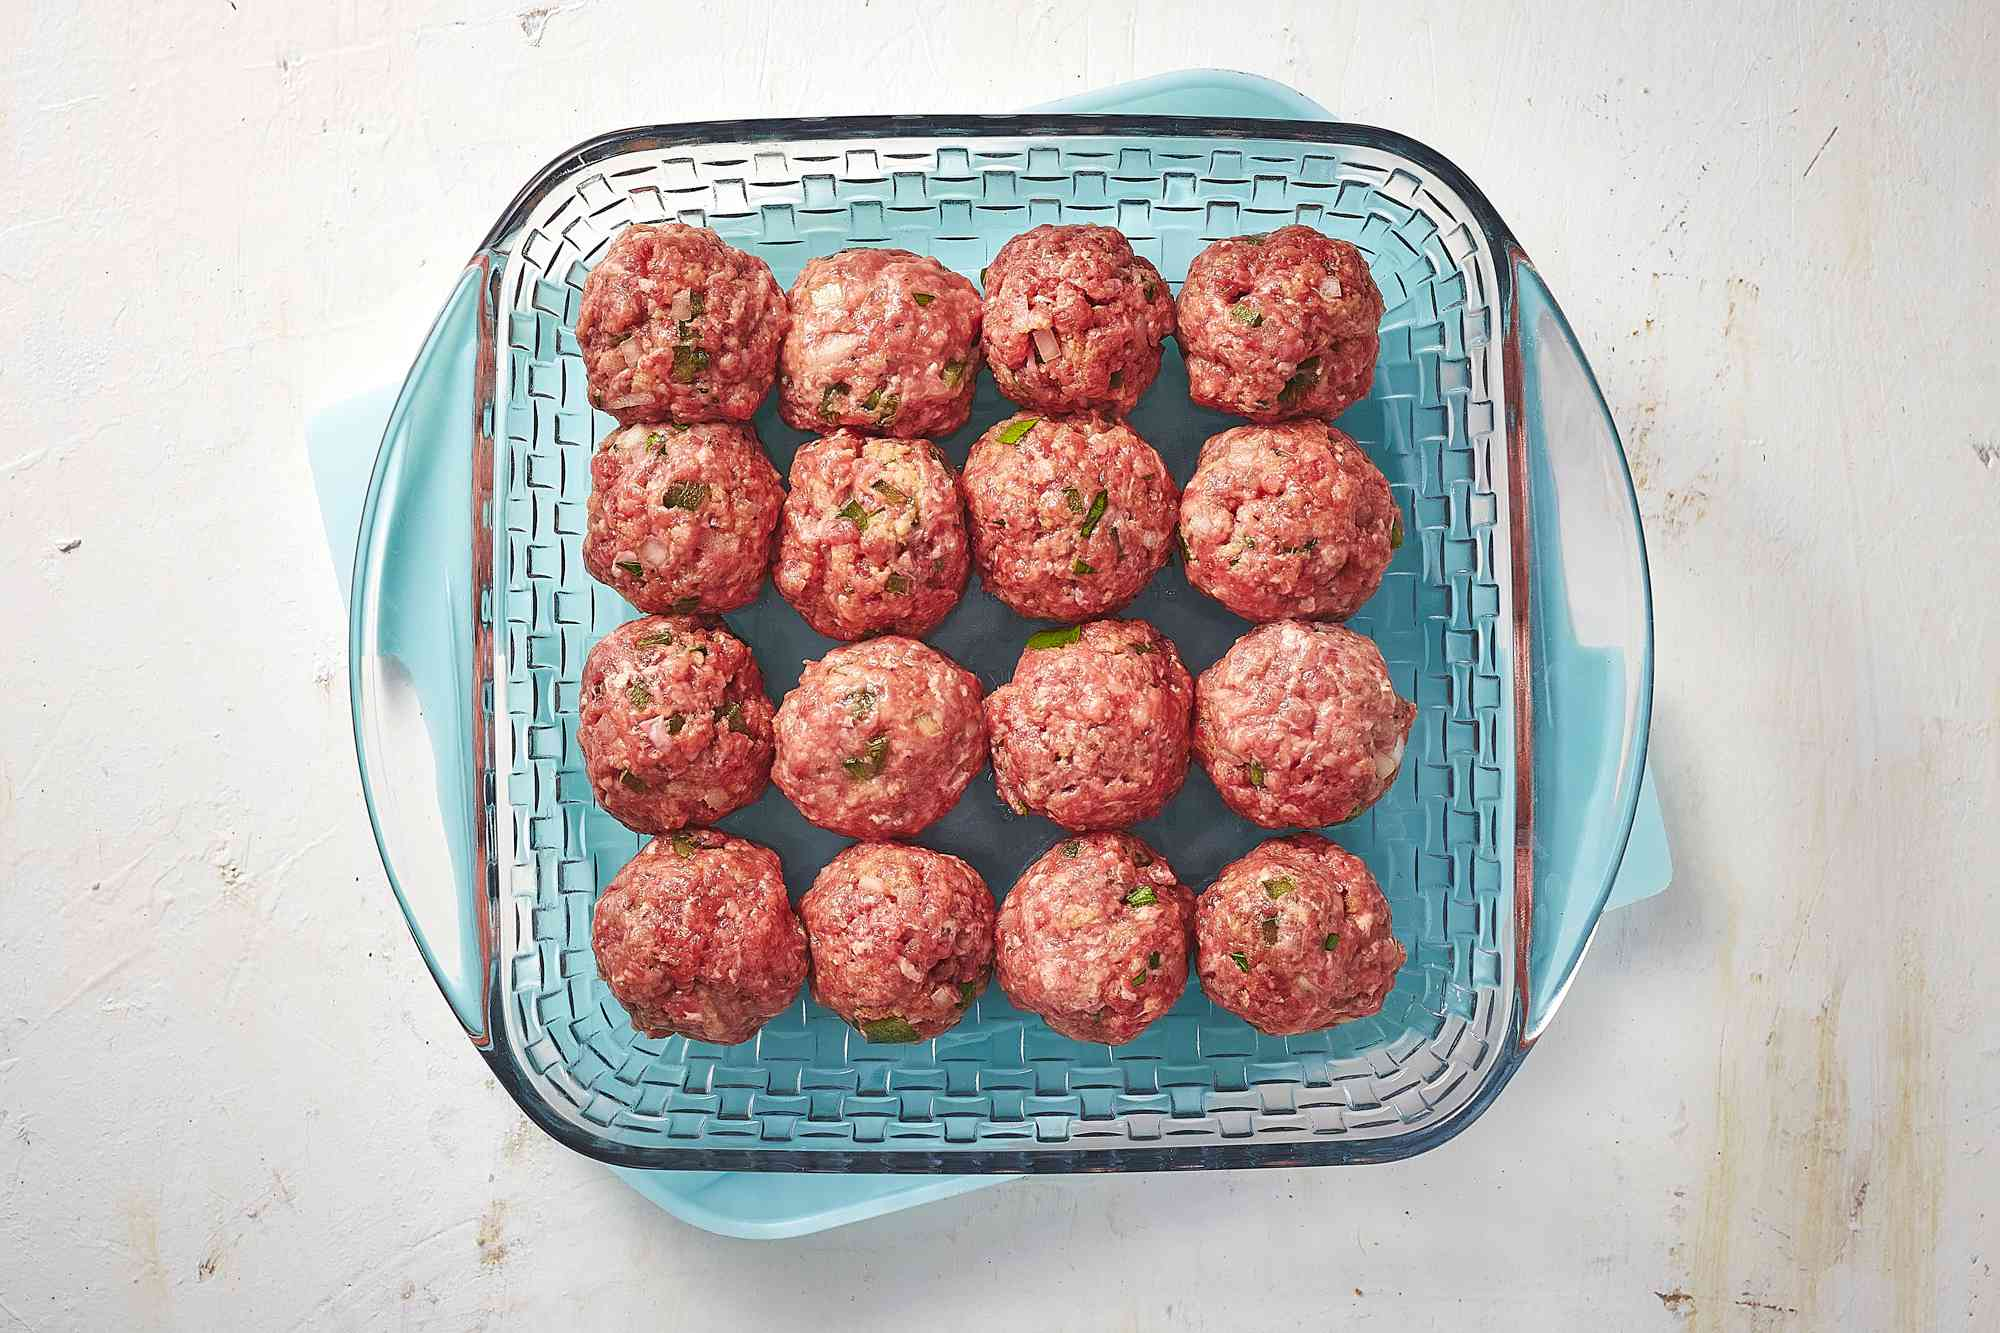 meatballs in a glass container